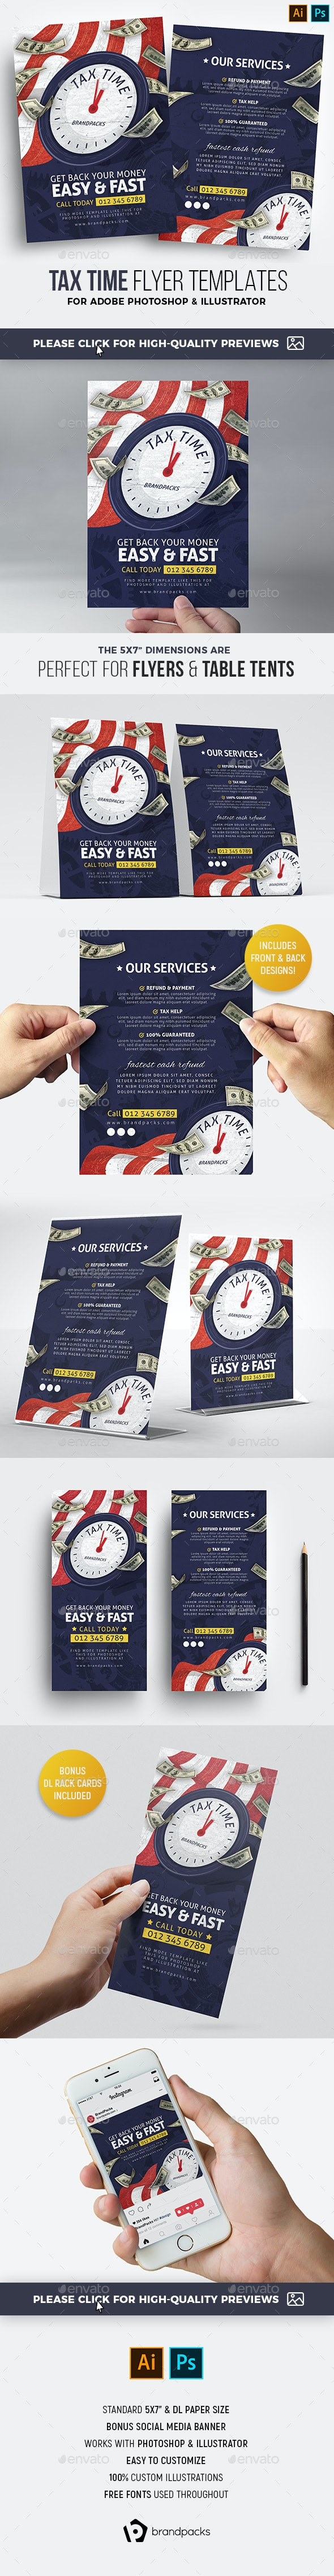 Tax Time Flyer - Corporate Flyers